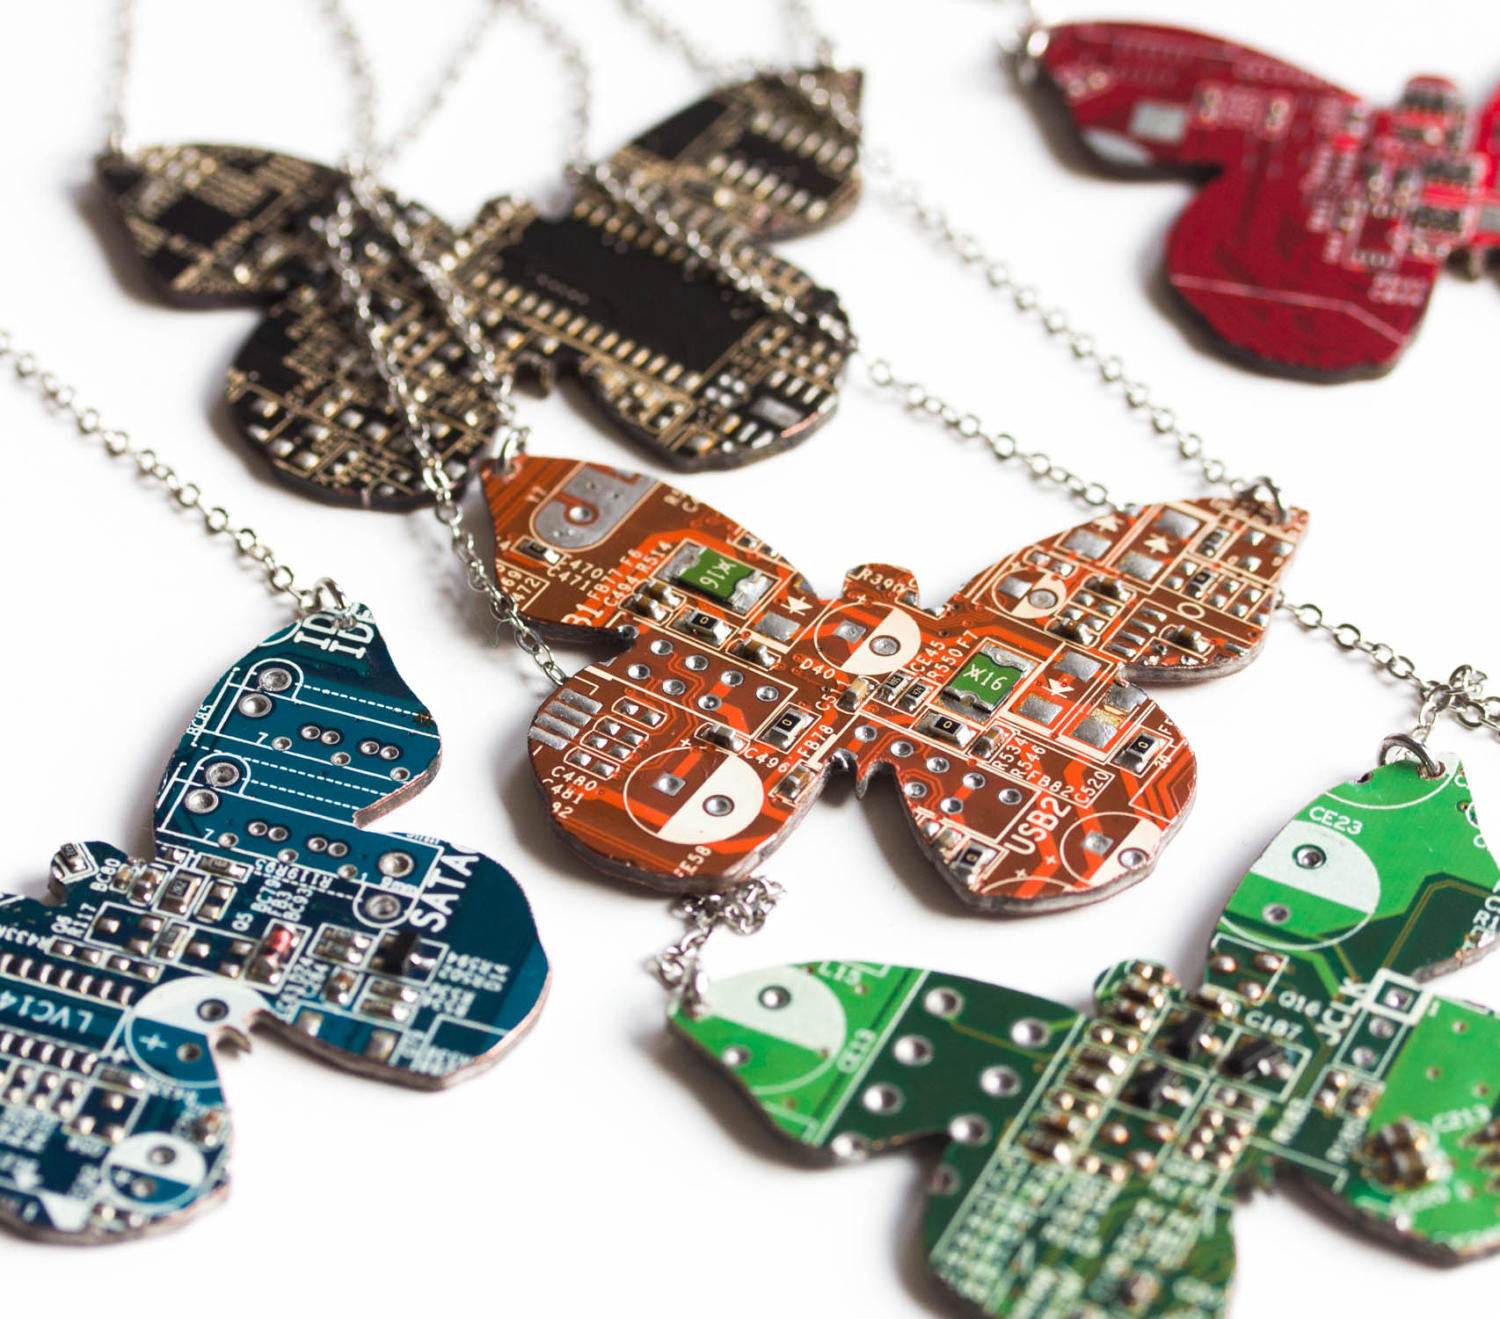 Geeky butterfly necklace made of circuit board